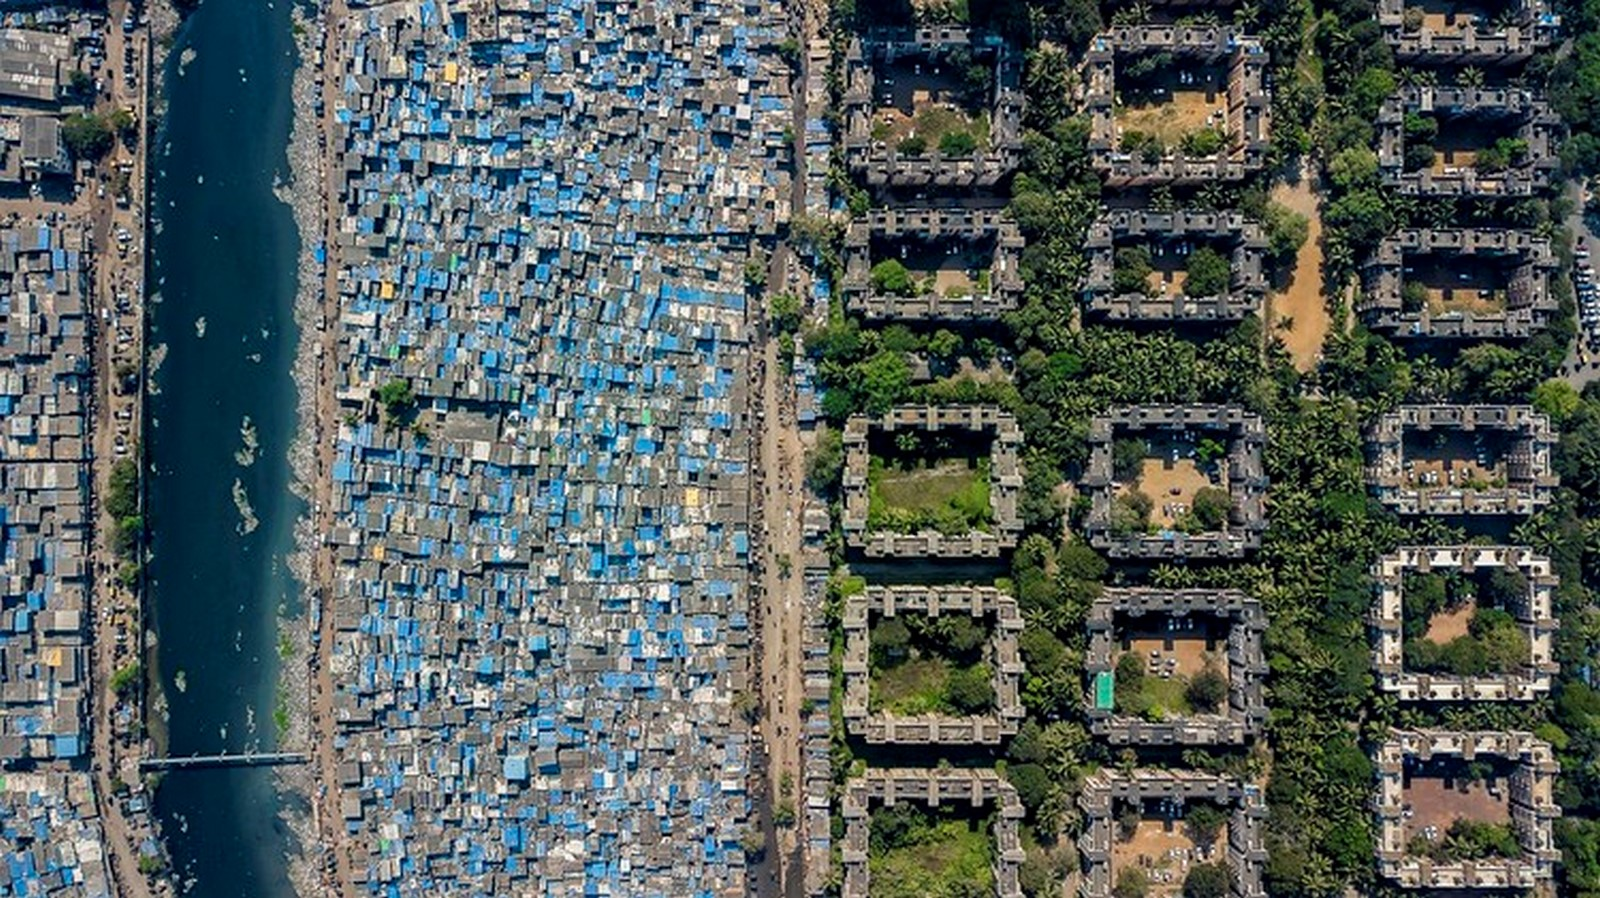 Can architecture and design fill the inequality gap in our society? - Sheet5